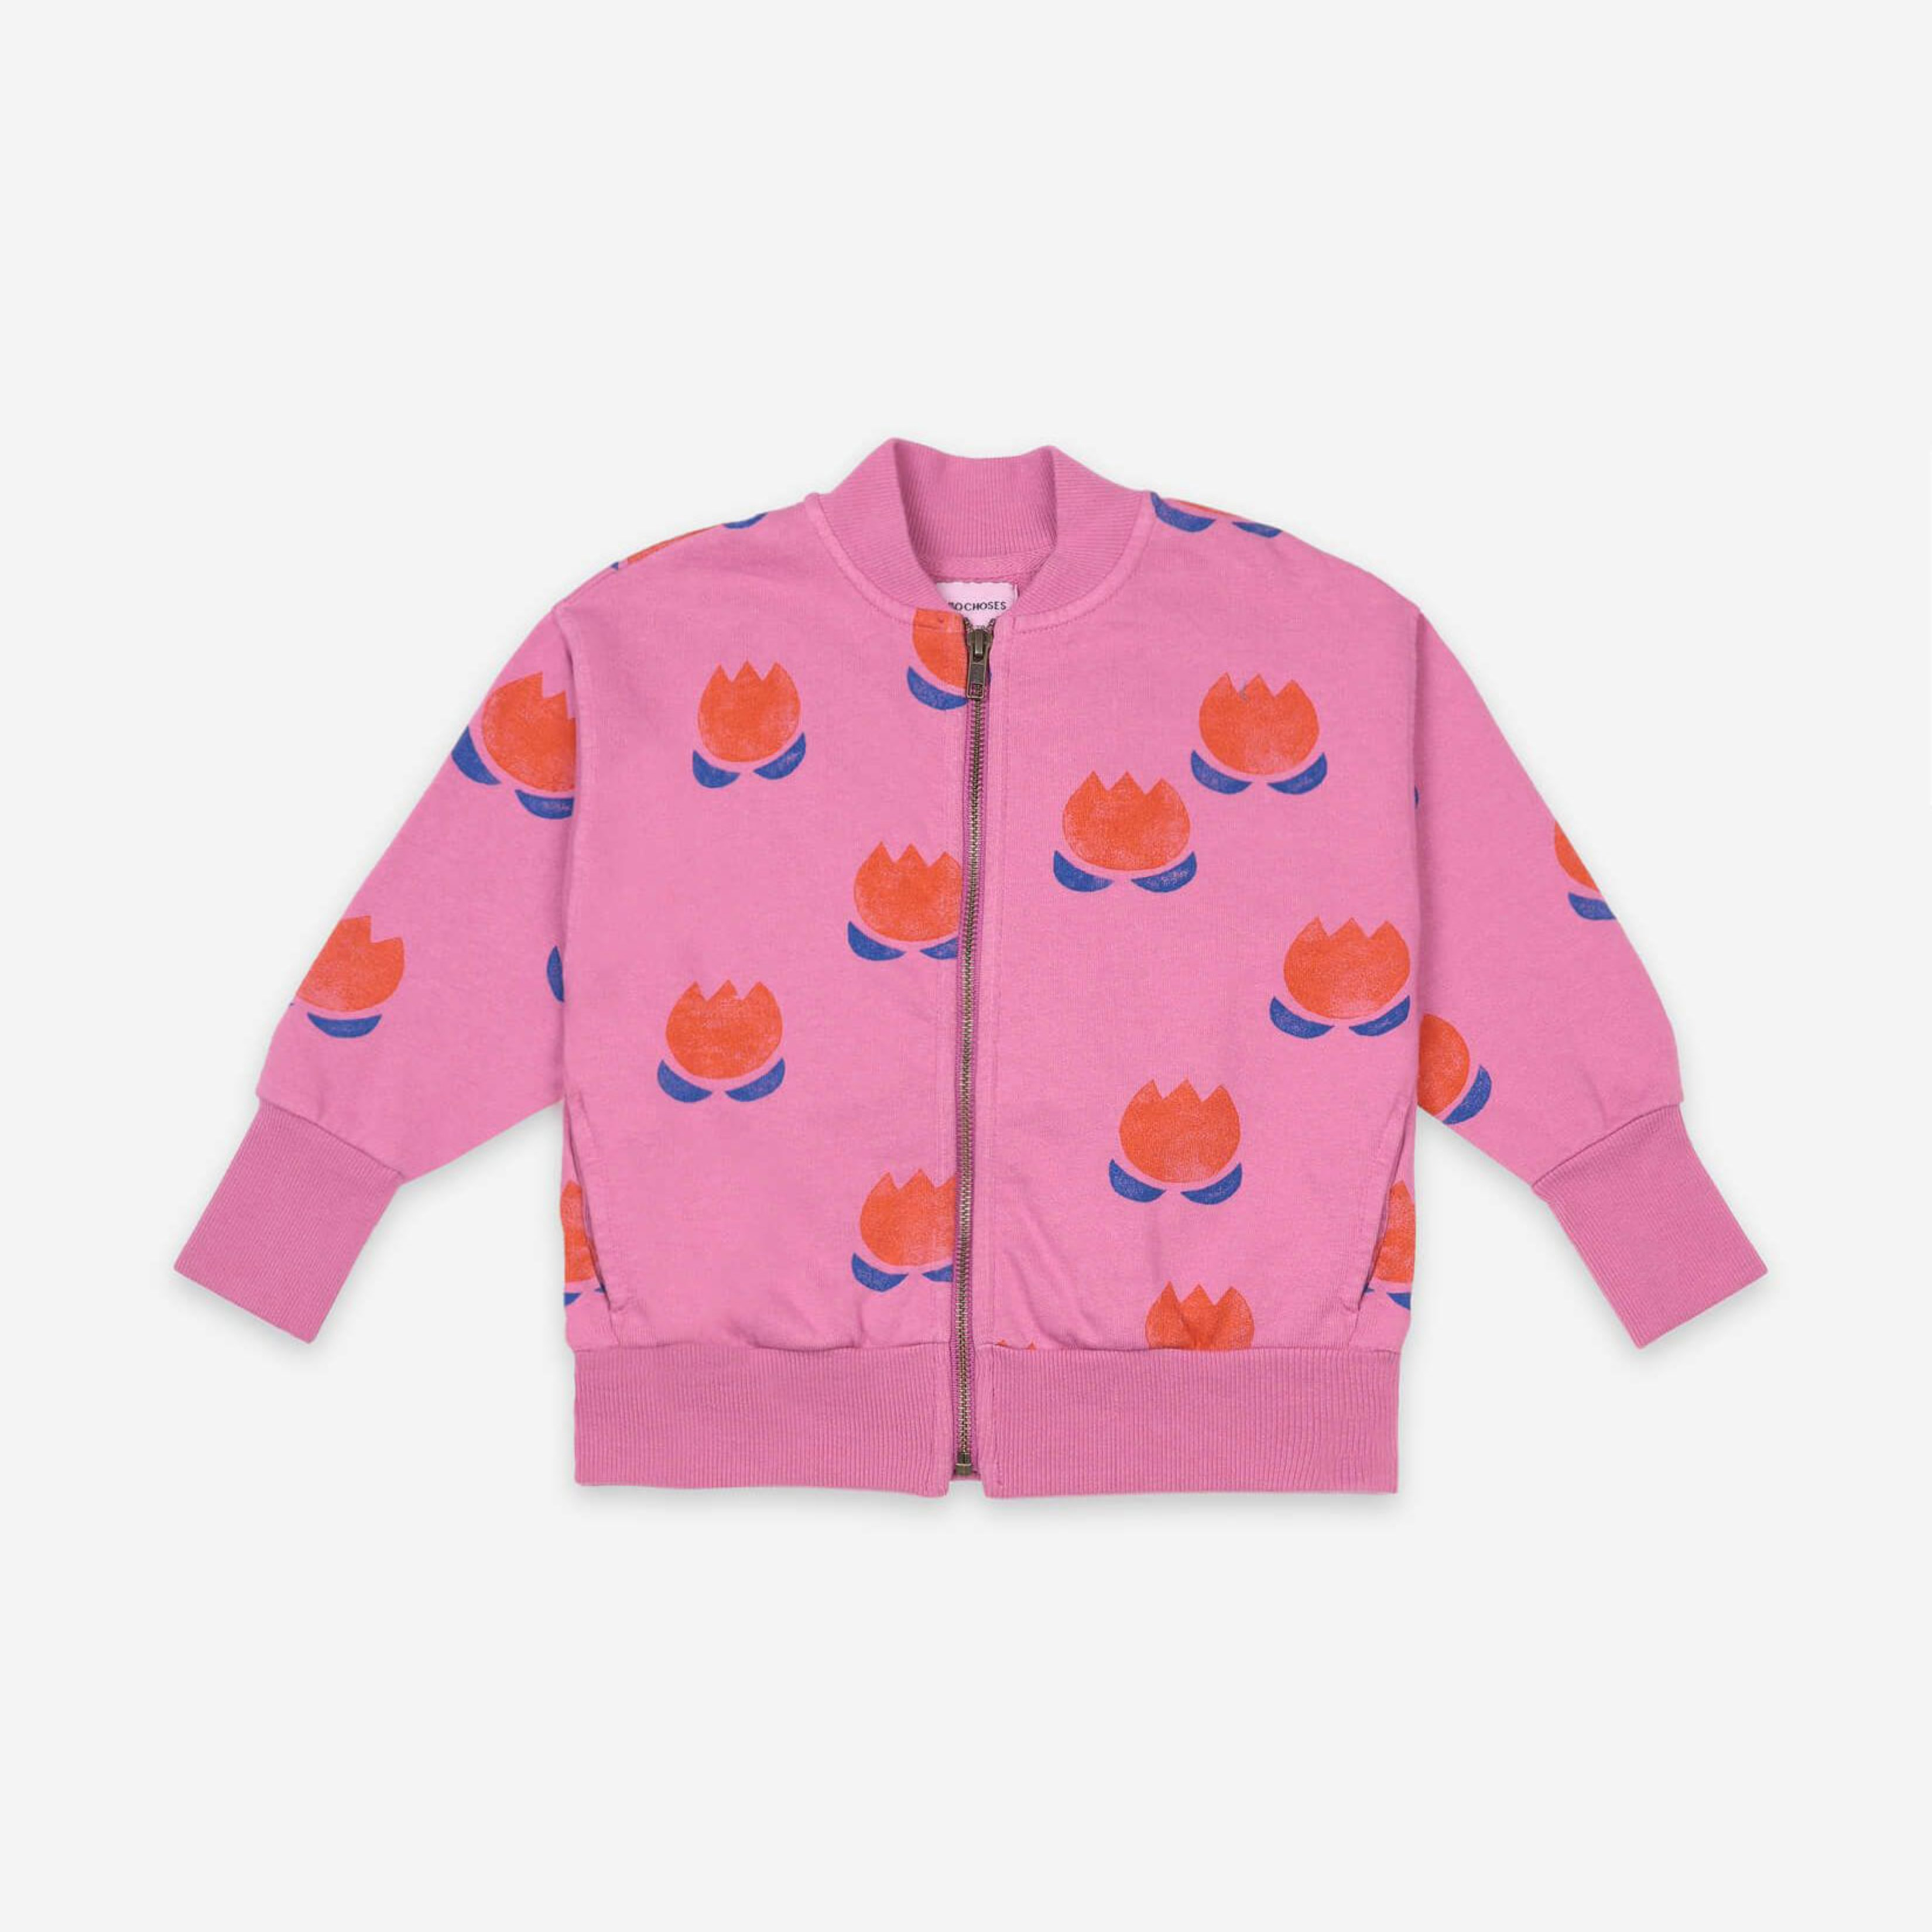 Bobo Choses - Chocolate Flower All Over Zipped Sweatshirt